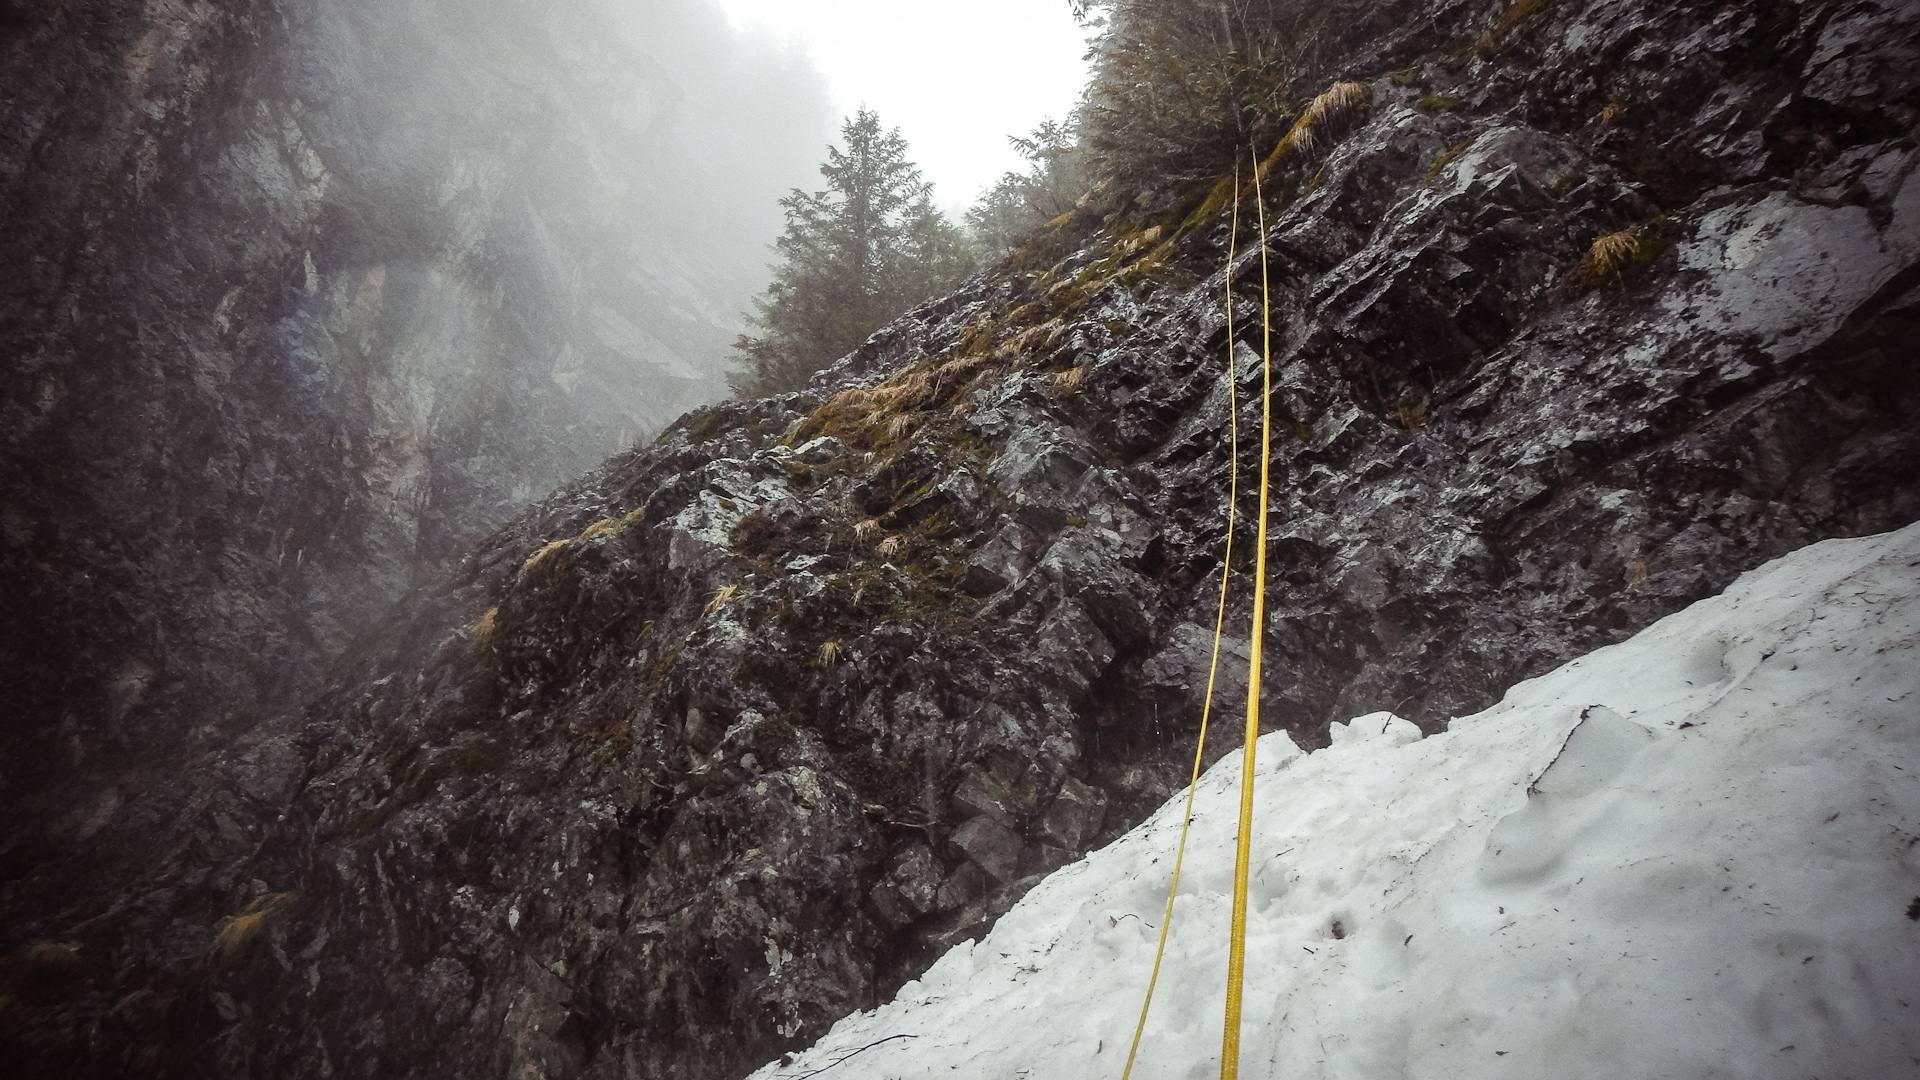 We got a tad lost on Guye Peak last year, ended up doing multiple rappels for a faster descent.